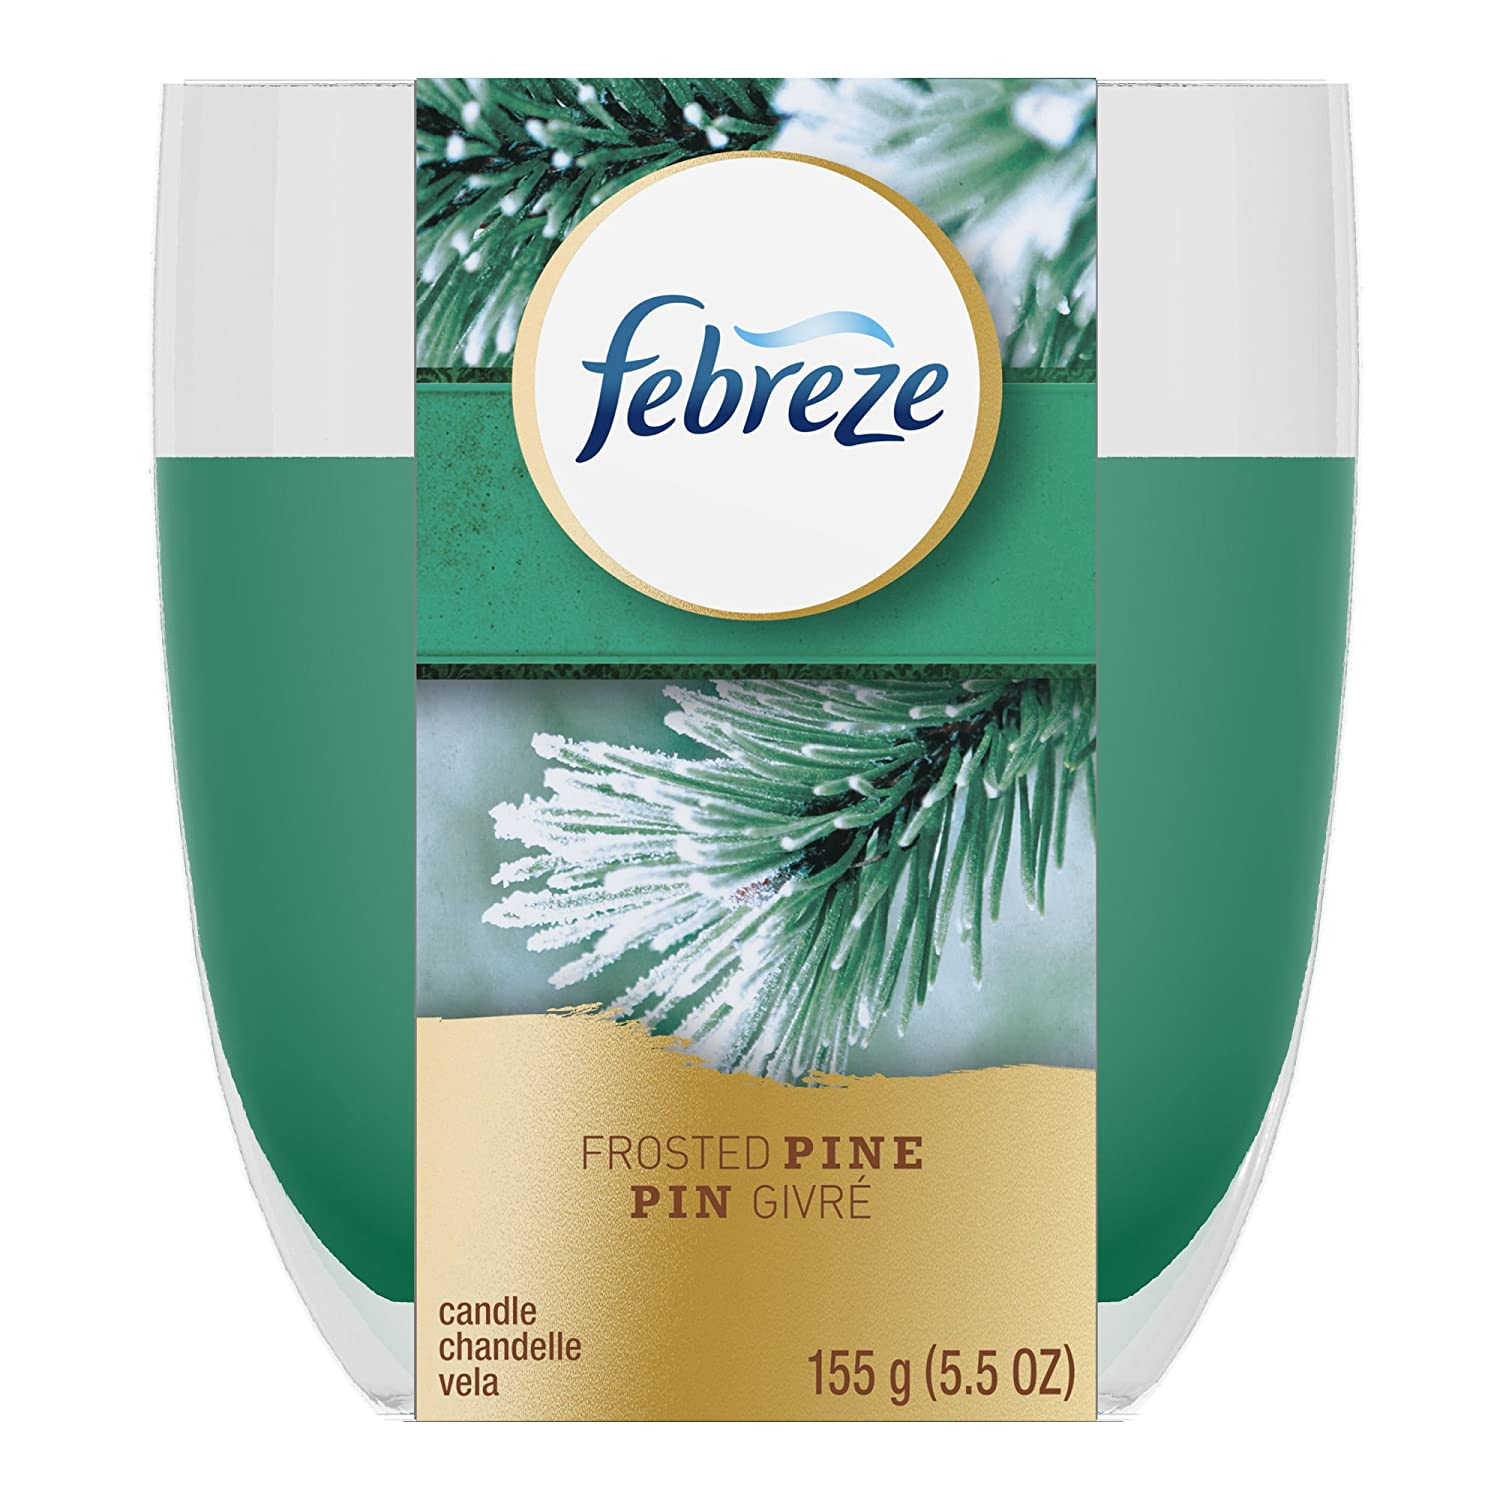 Amazon.com: Febreze LIMITED EDITION Frosted Pine Air Freshener 5.5 Oz Candle: Health & Personal Care